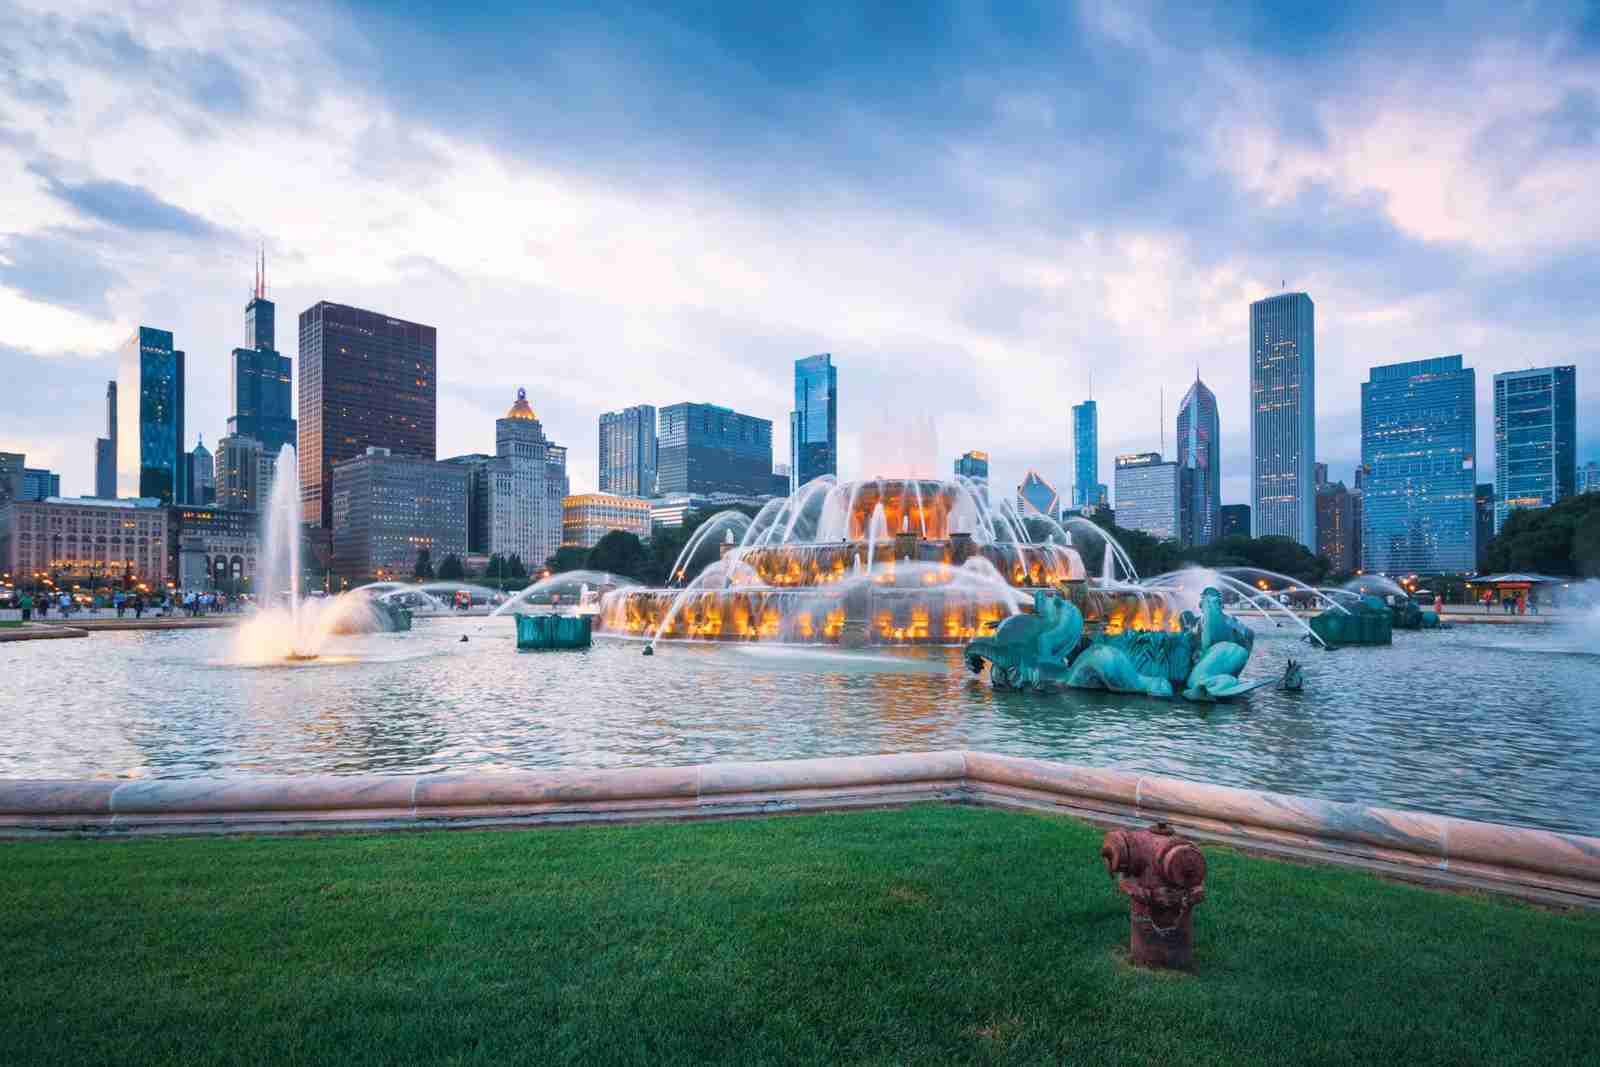 The Buckingham Fountain in Chicago. (Photo by Easyturn/Getty Images)